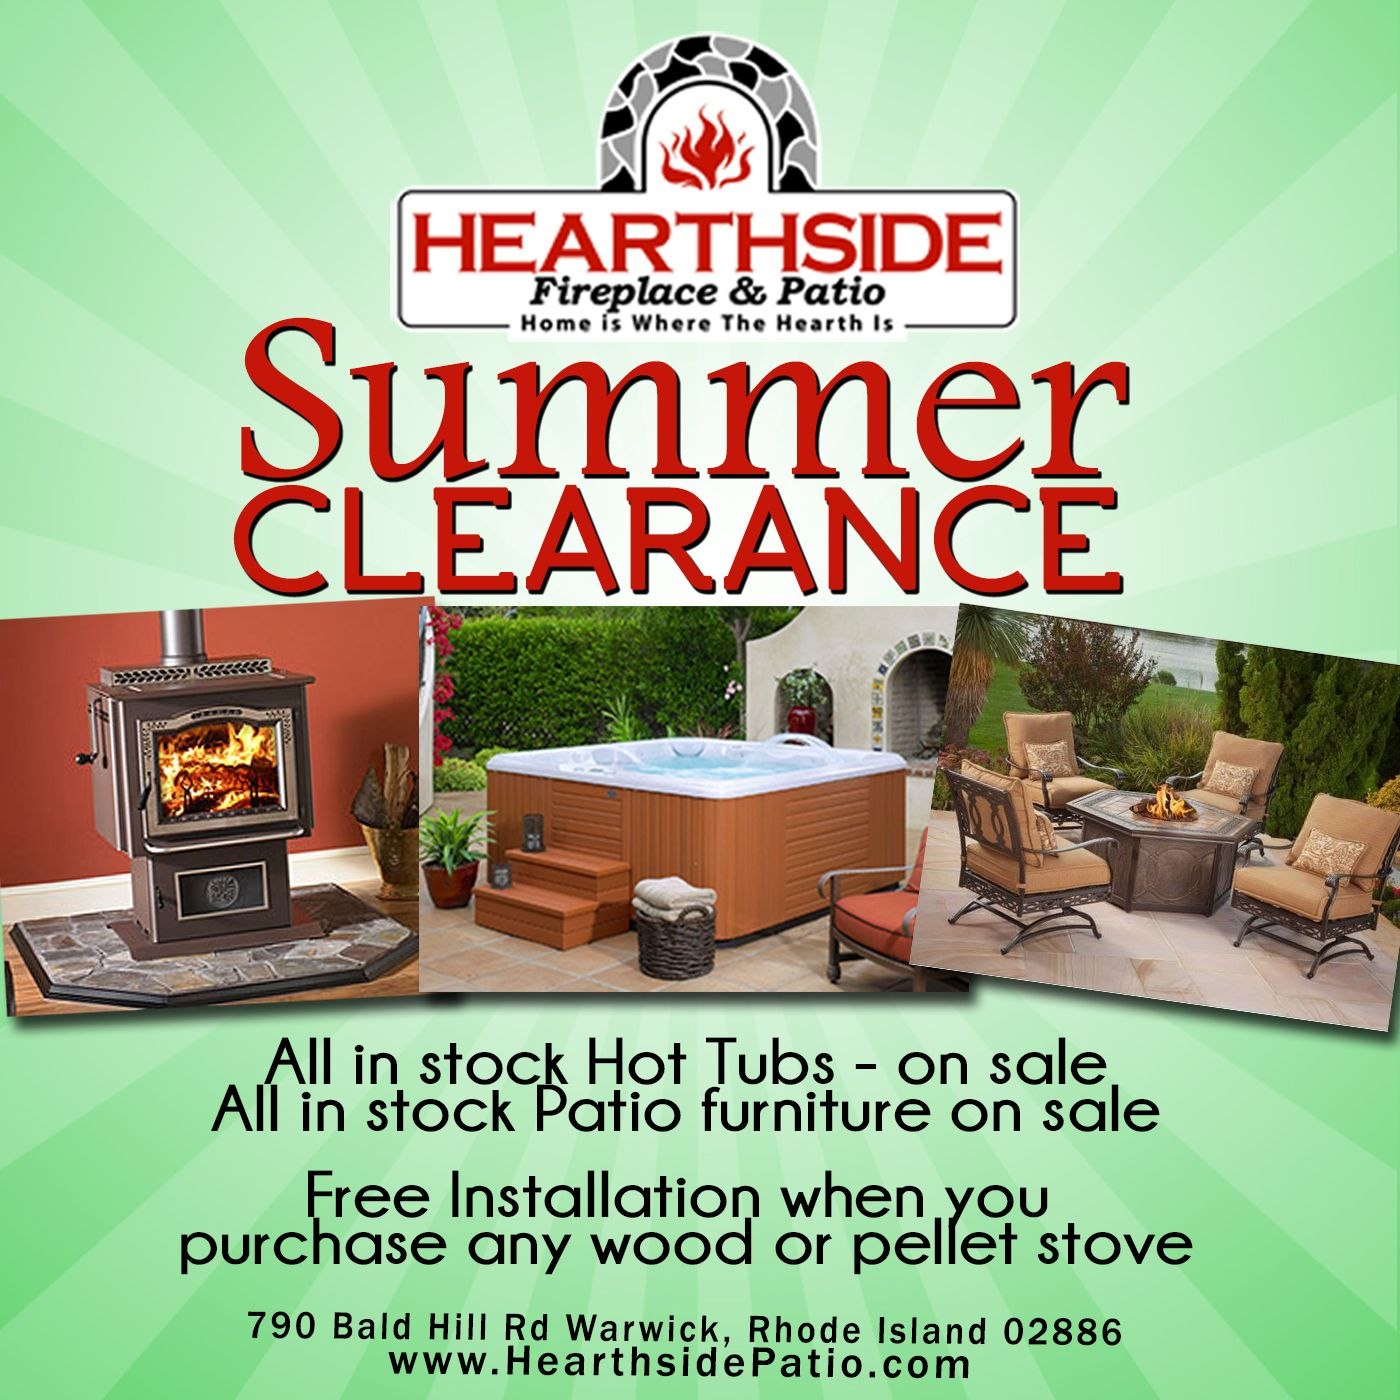 Summer Clearance Sale Going On Now At Hearthside Fireplace U0026 Patio!  #Hearthside_RI Www.